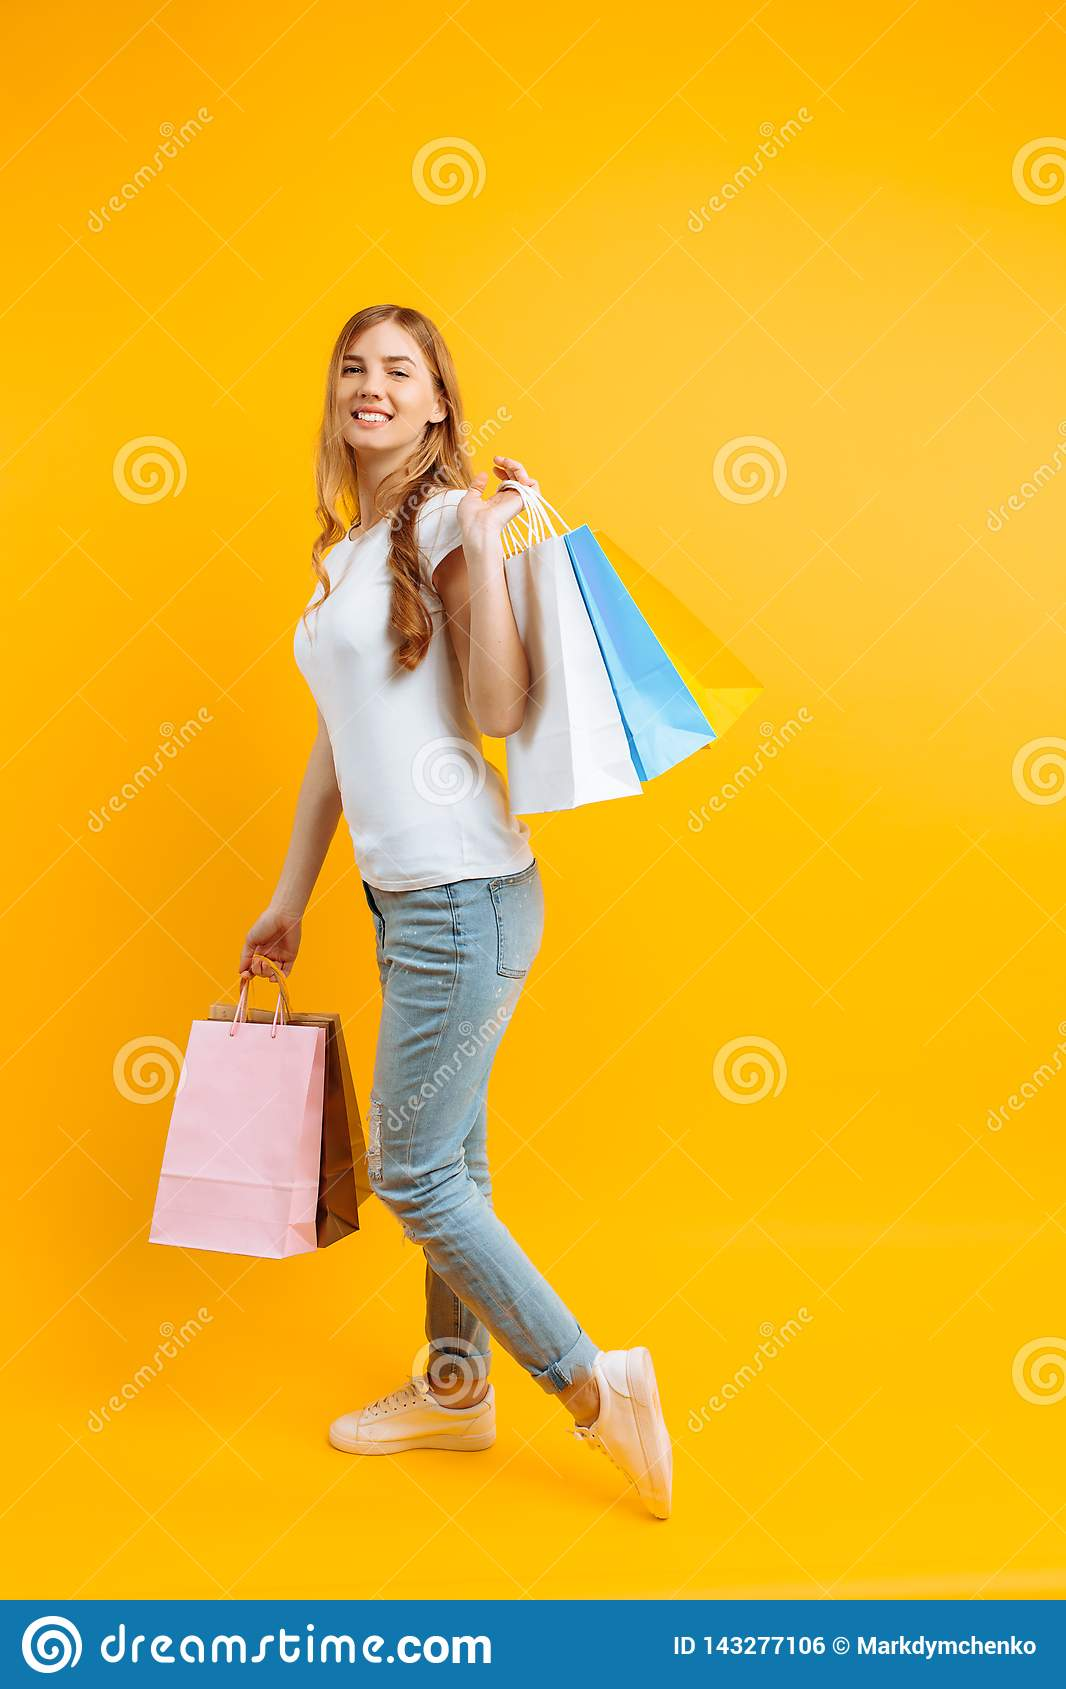 Portrait of a young beautiful woman in a white T-shirt, with multi-colored bags, on a yellow background